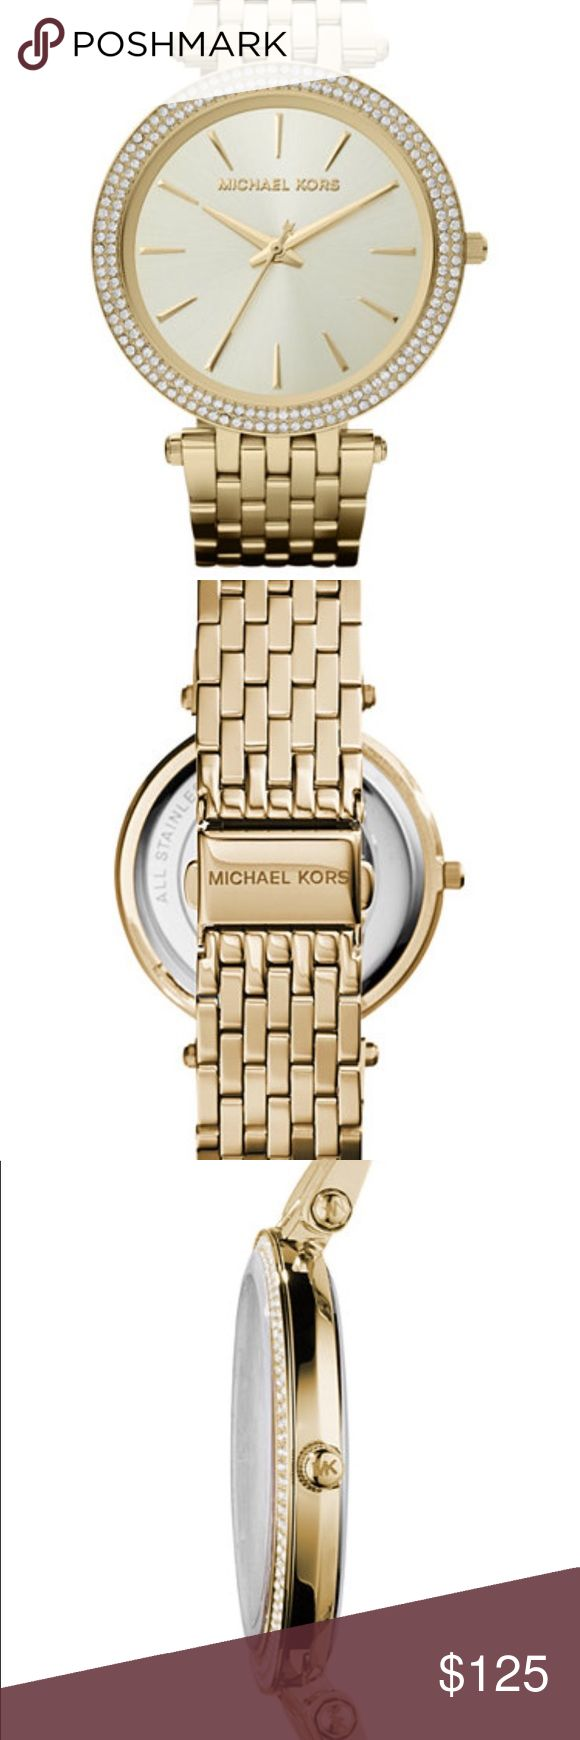 MK Gold Watch Womens Used An elegant addition to your collection: a glistening Darci watch from Michael Kors •Gold Tone  stainless steel bracelet (6-9/10L) •39mm bezel crystallized with Swarovski elements •Light Champagne dial with gold-tone stick markers and three hands •Quartz Movement •Water Resistant 50 Meters •One Tiny minor scratch on face of watch KORS Michael Kors Accessories Watches